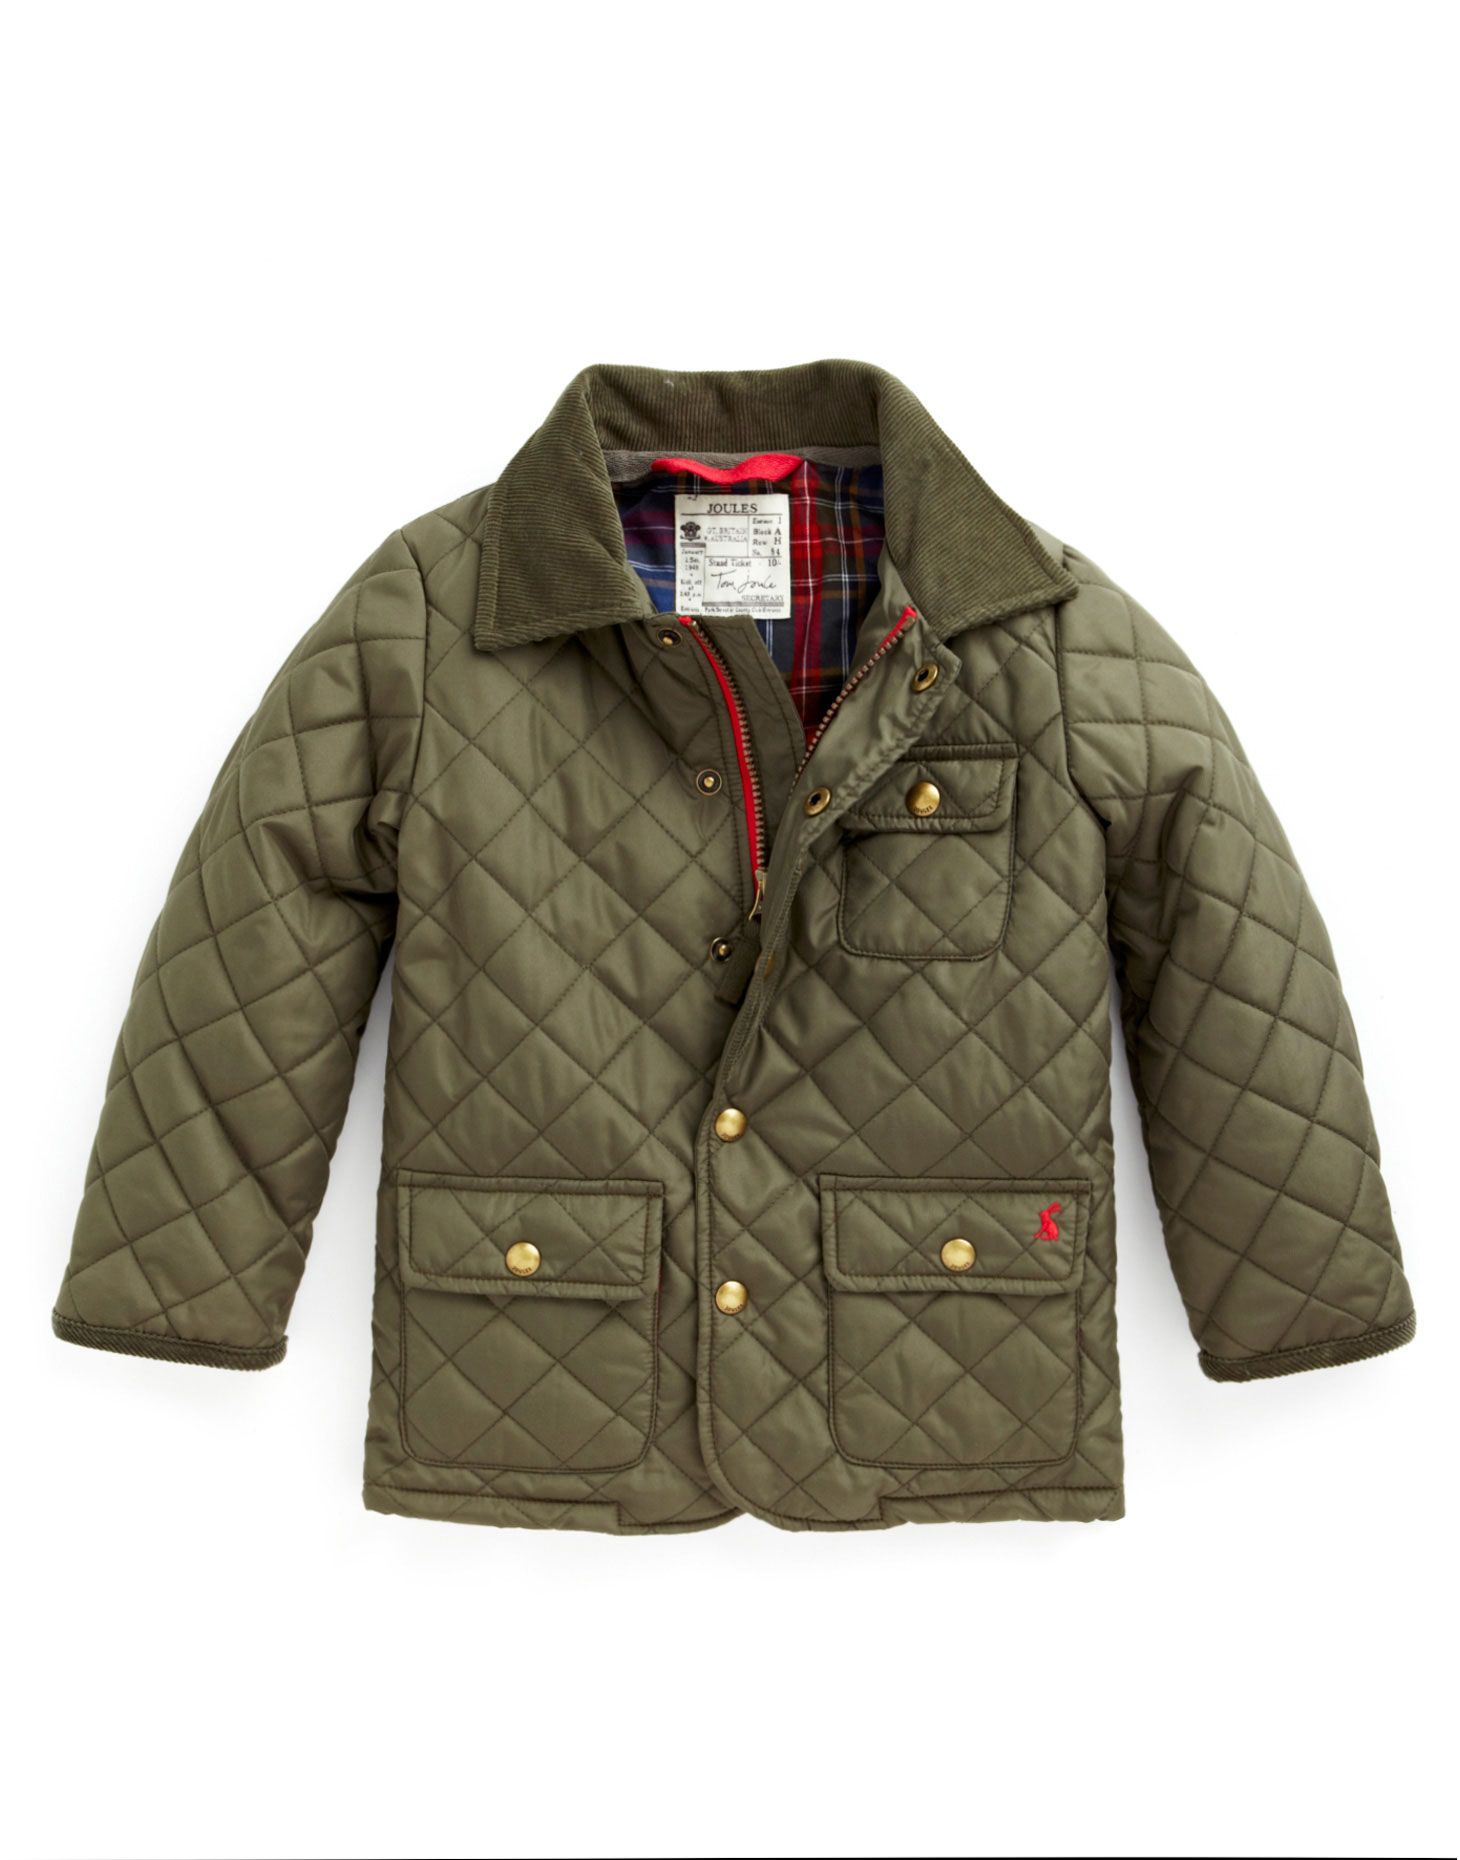 quilted boys coat - Google Search | Spring 2014 Silhouette ... : quilted baby coat - Adamdwight.com